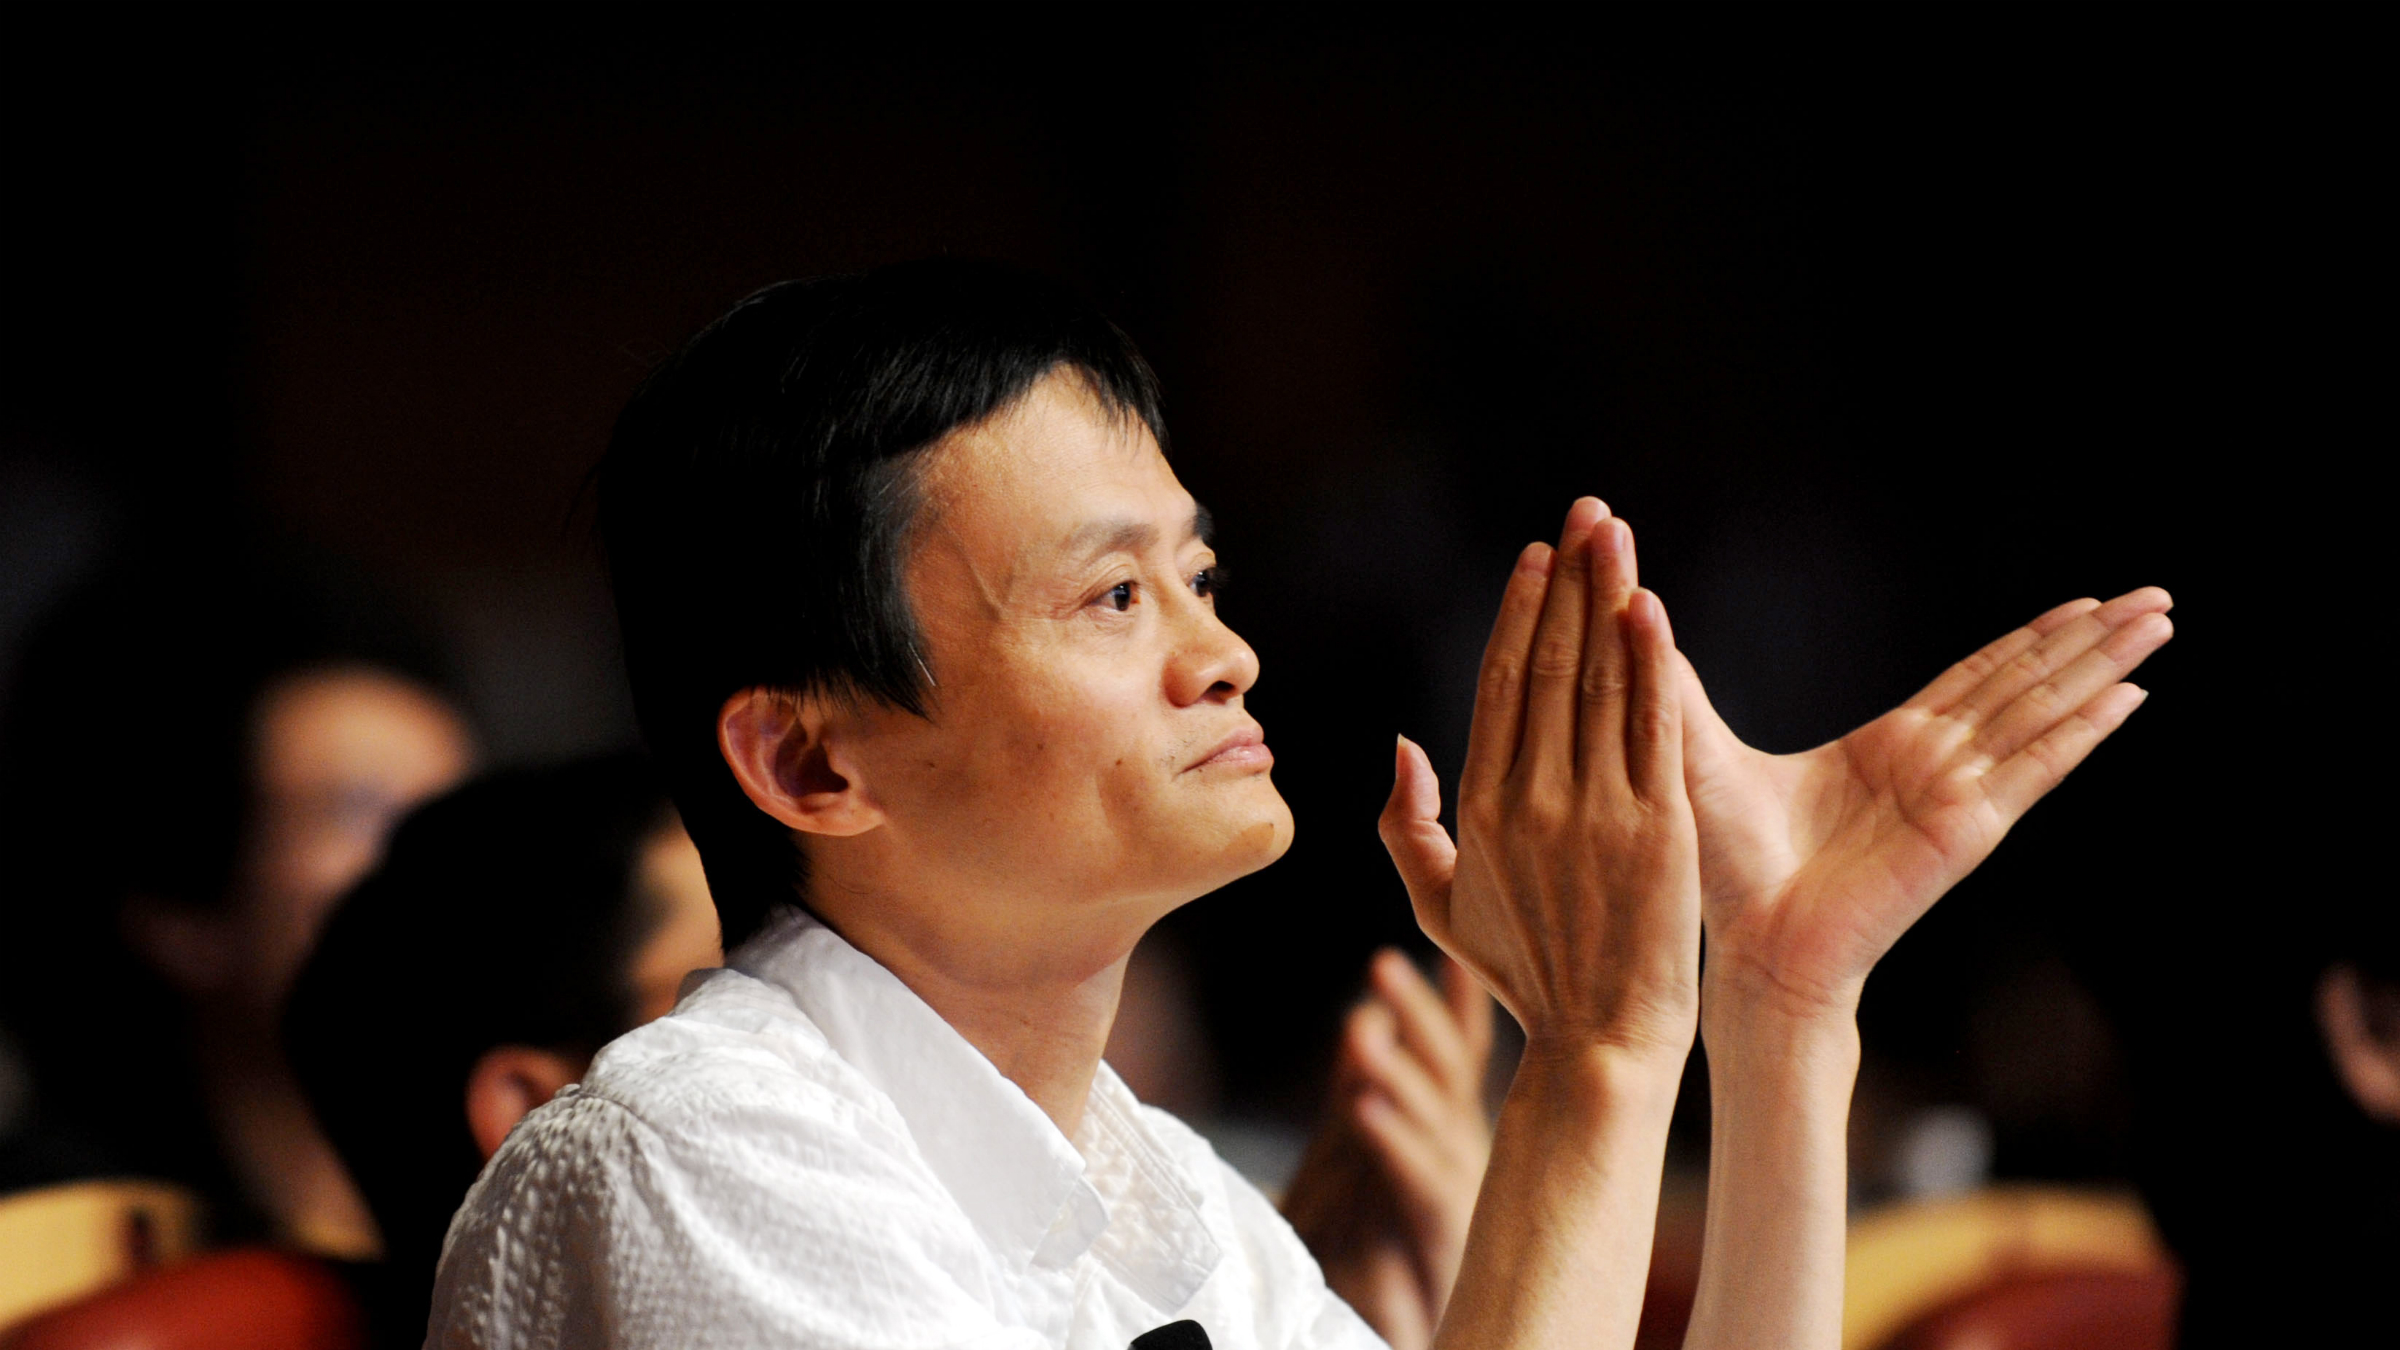 Jack Ma (Ma Yun), Chairman of Alibaba Group, attends the 8th Netrepreneur Summit in Hangzhou city, east Chinas Zhejiang province, 10 September 2011. Chinas Alibaba Group aims for 1 trillion yuan (US$157 billion) in transaction volume next year on its Taobao platform, Alibaba Group chairman Jack Ma said on Saturday (10 September 2011) at the 8th Netrepreneur Summit in Hangzhou, capital of the eastern Chinese province of Zhejiang.(Imaginechina via AP Images